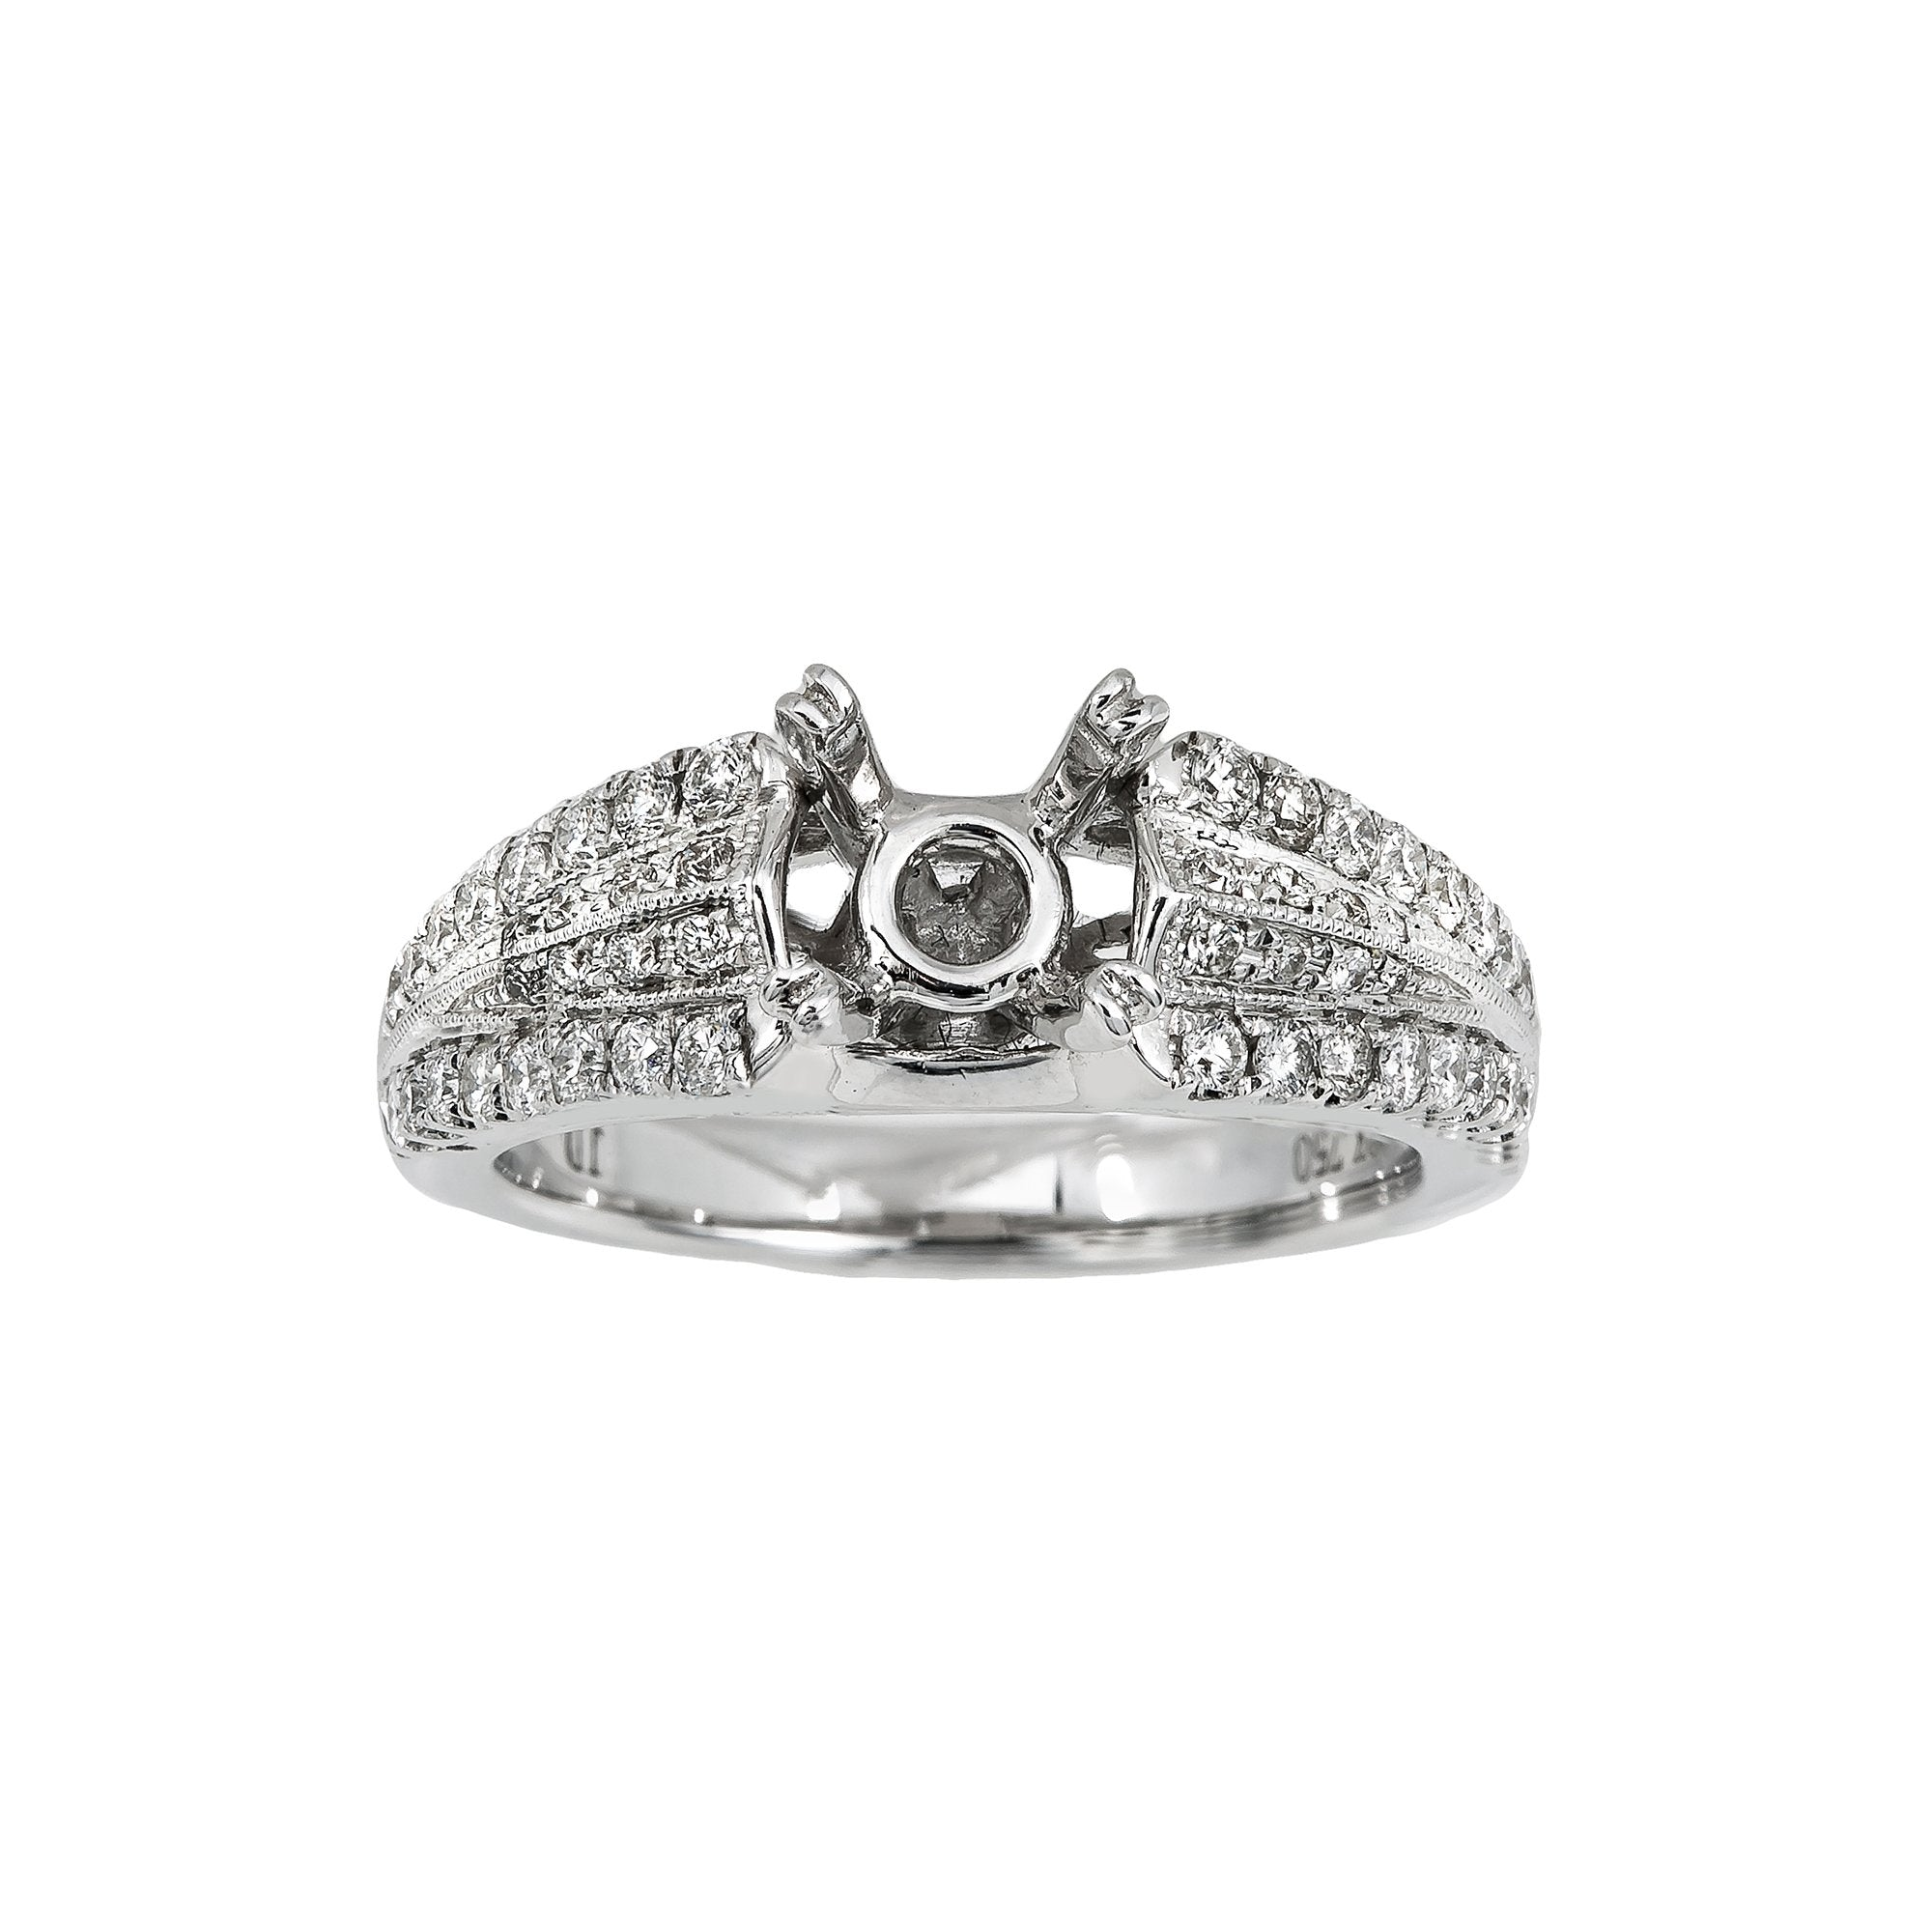 18K White Gold BJ7694R1 Women's Ring With 0.52 CT Diamonds